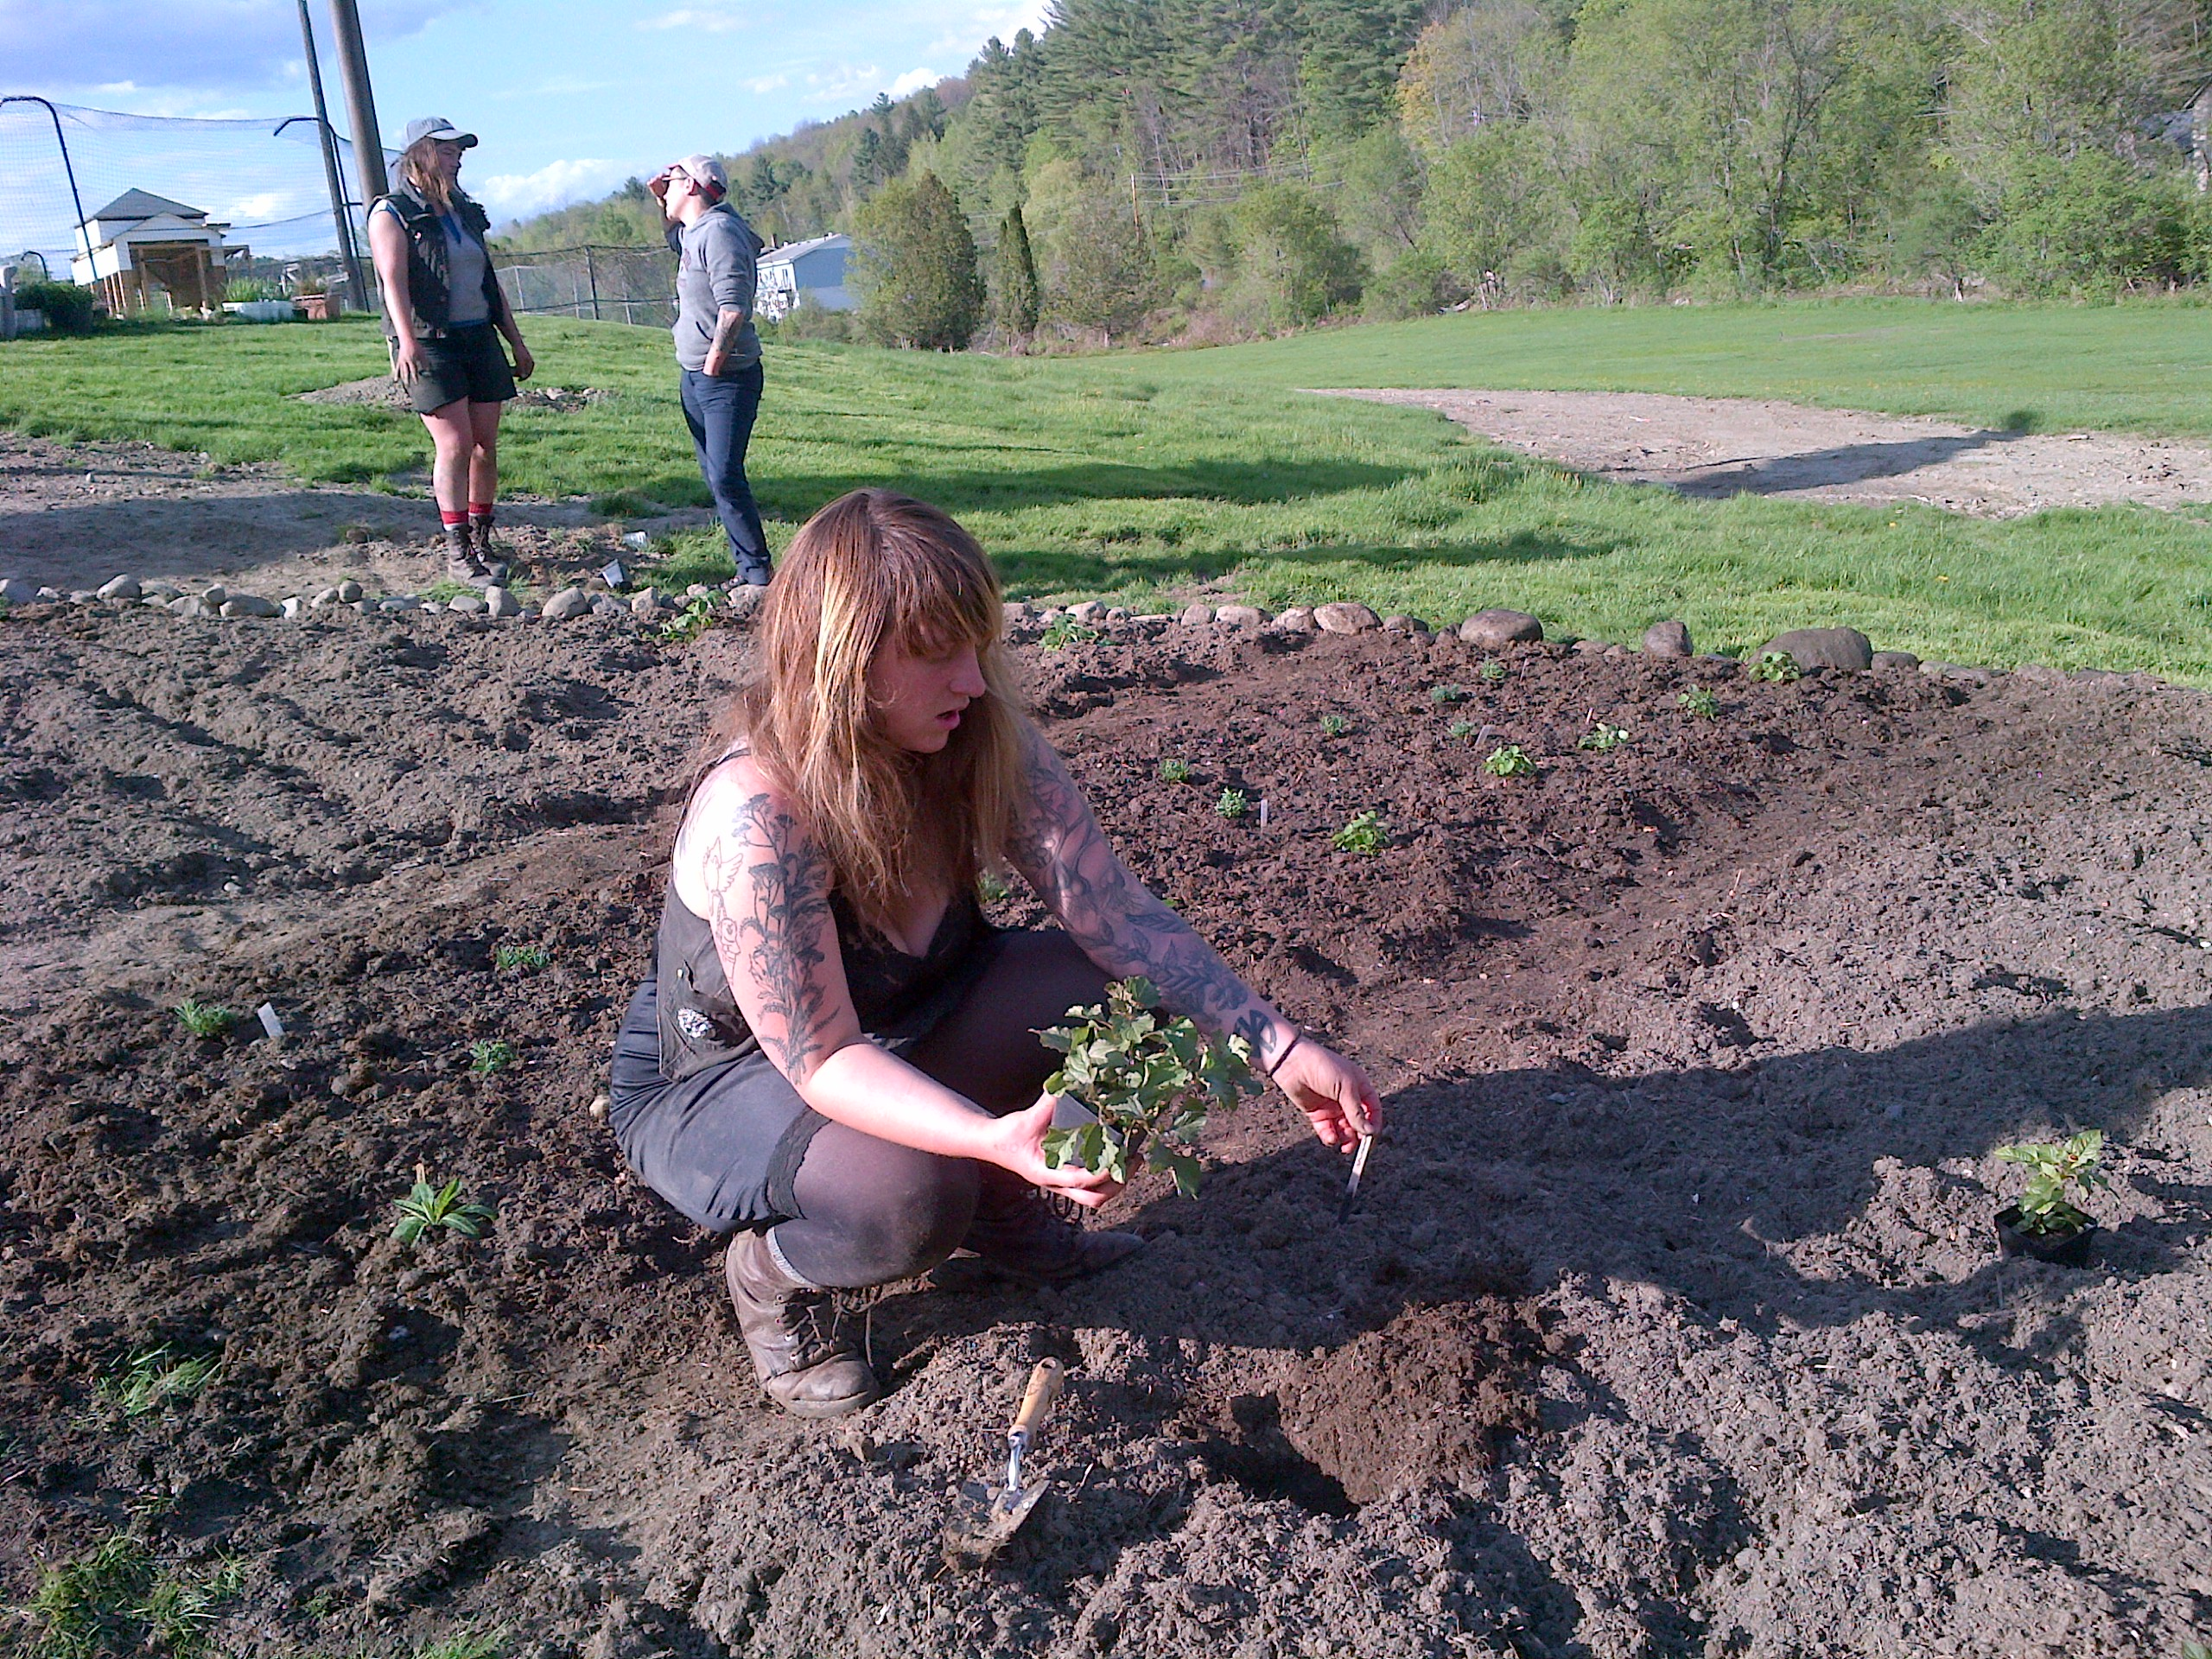 Lroy makes first plantings in the herb garden